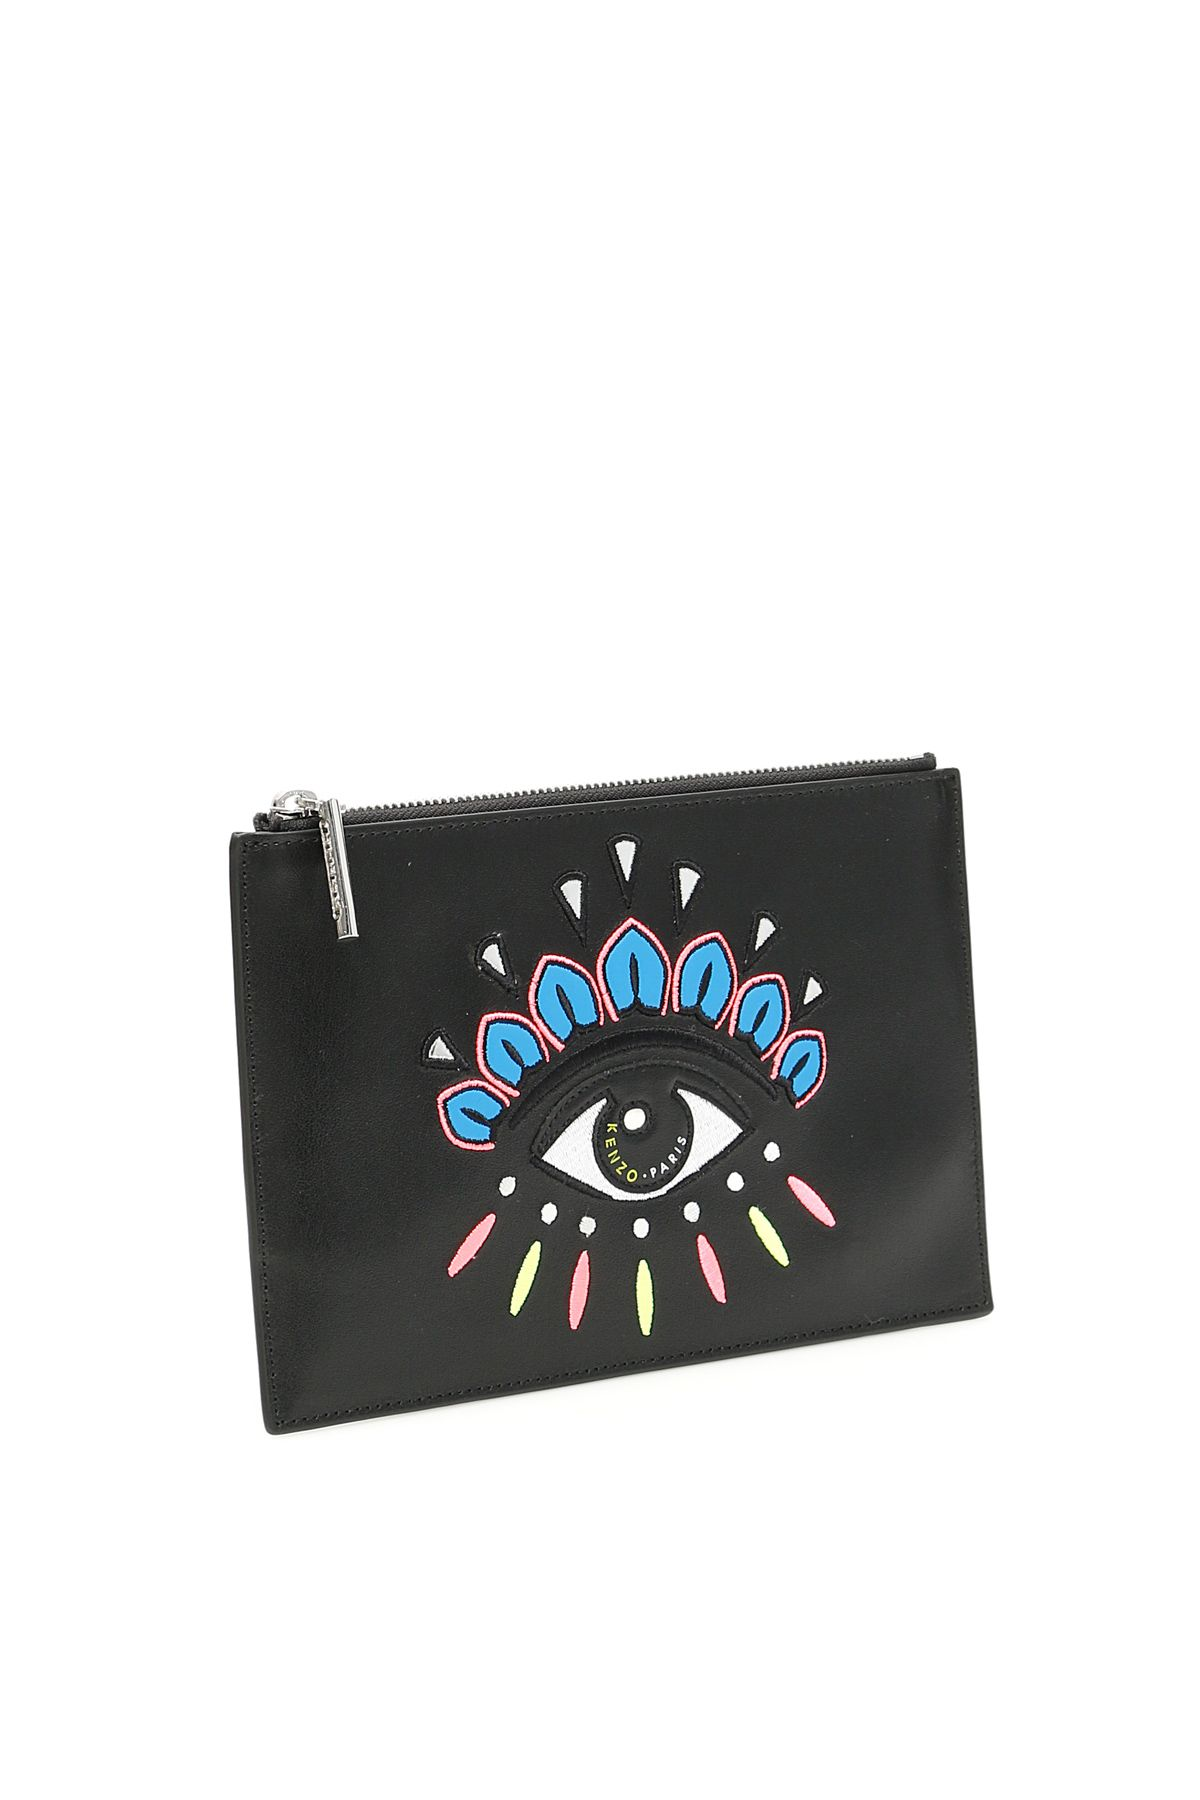 aae3d0cae08 Kenzo Kenzo Pouch With Eye Embroidery - NOIR (Black) - 10860535 ...